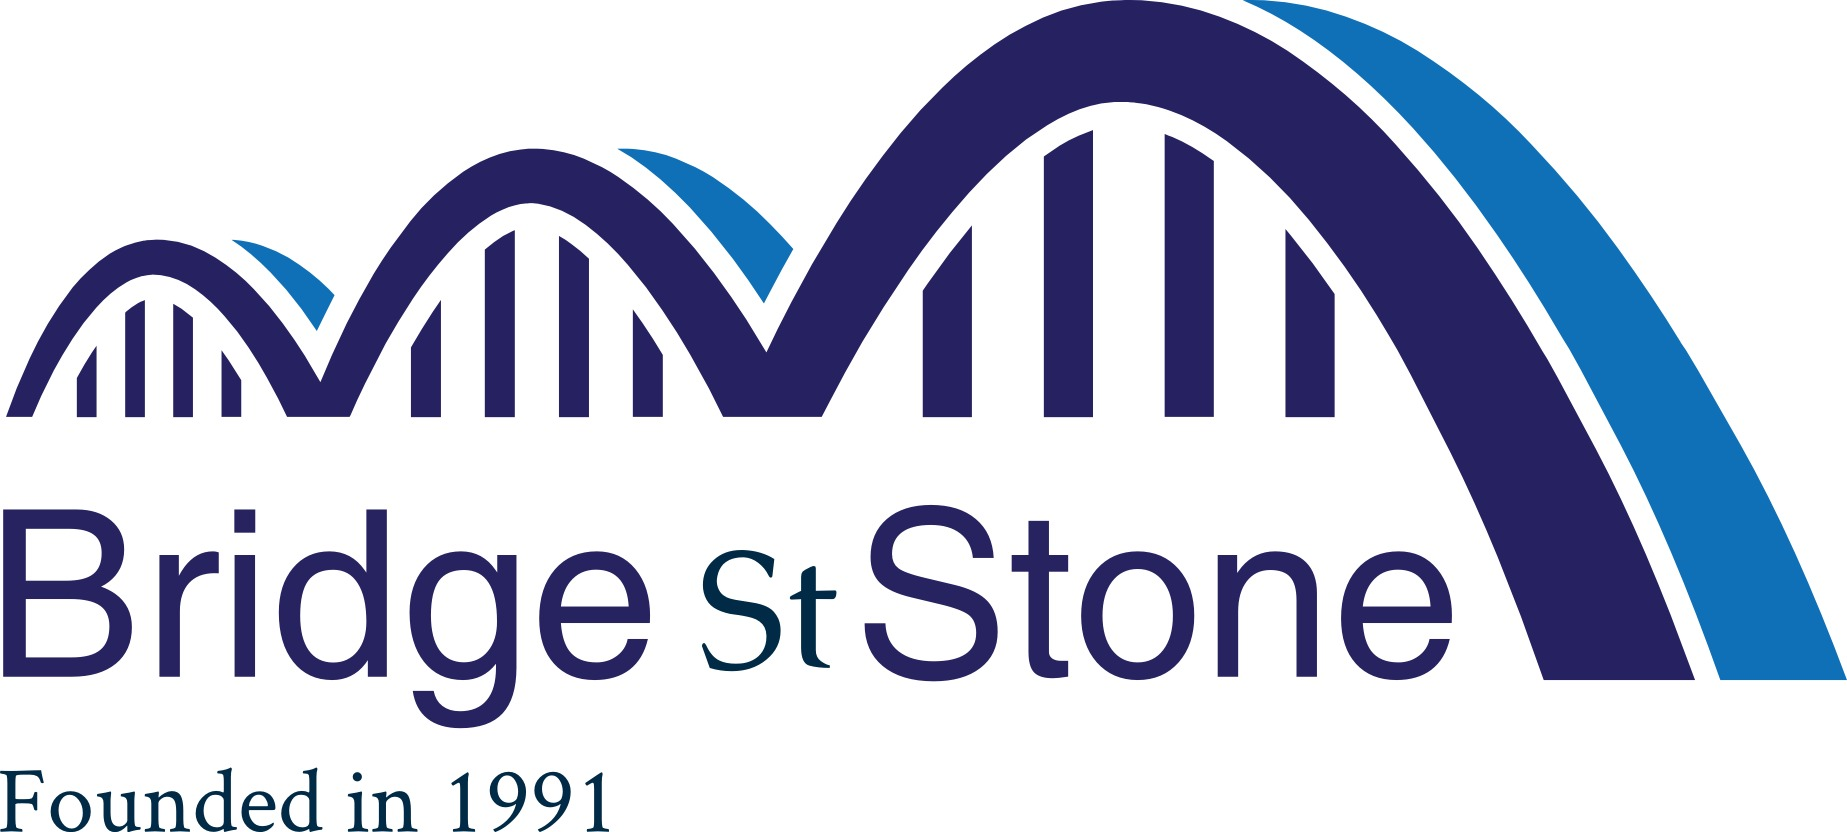 Read Bridge Street Stone Reviews